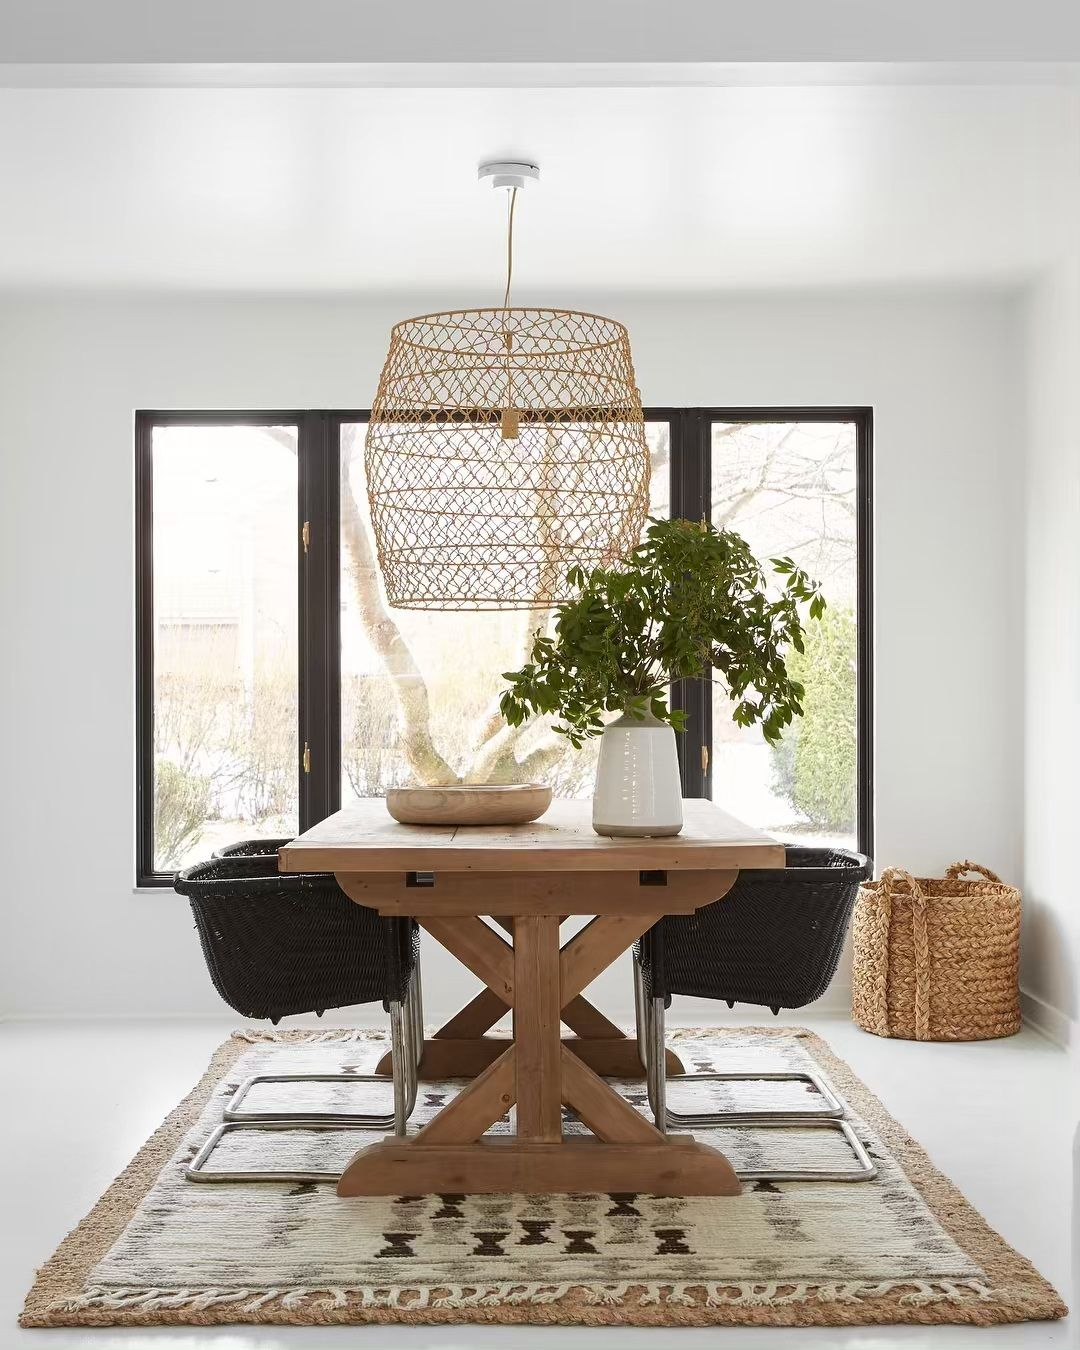 "Leanne Ford on Instagram: ""This #diningroom is all about the windows. They seemed dated before, but surrounded by clean #white #walls these #windows feel new again.…"" #leannefordinteriors"